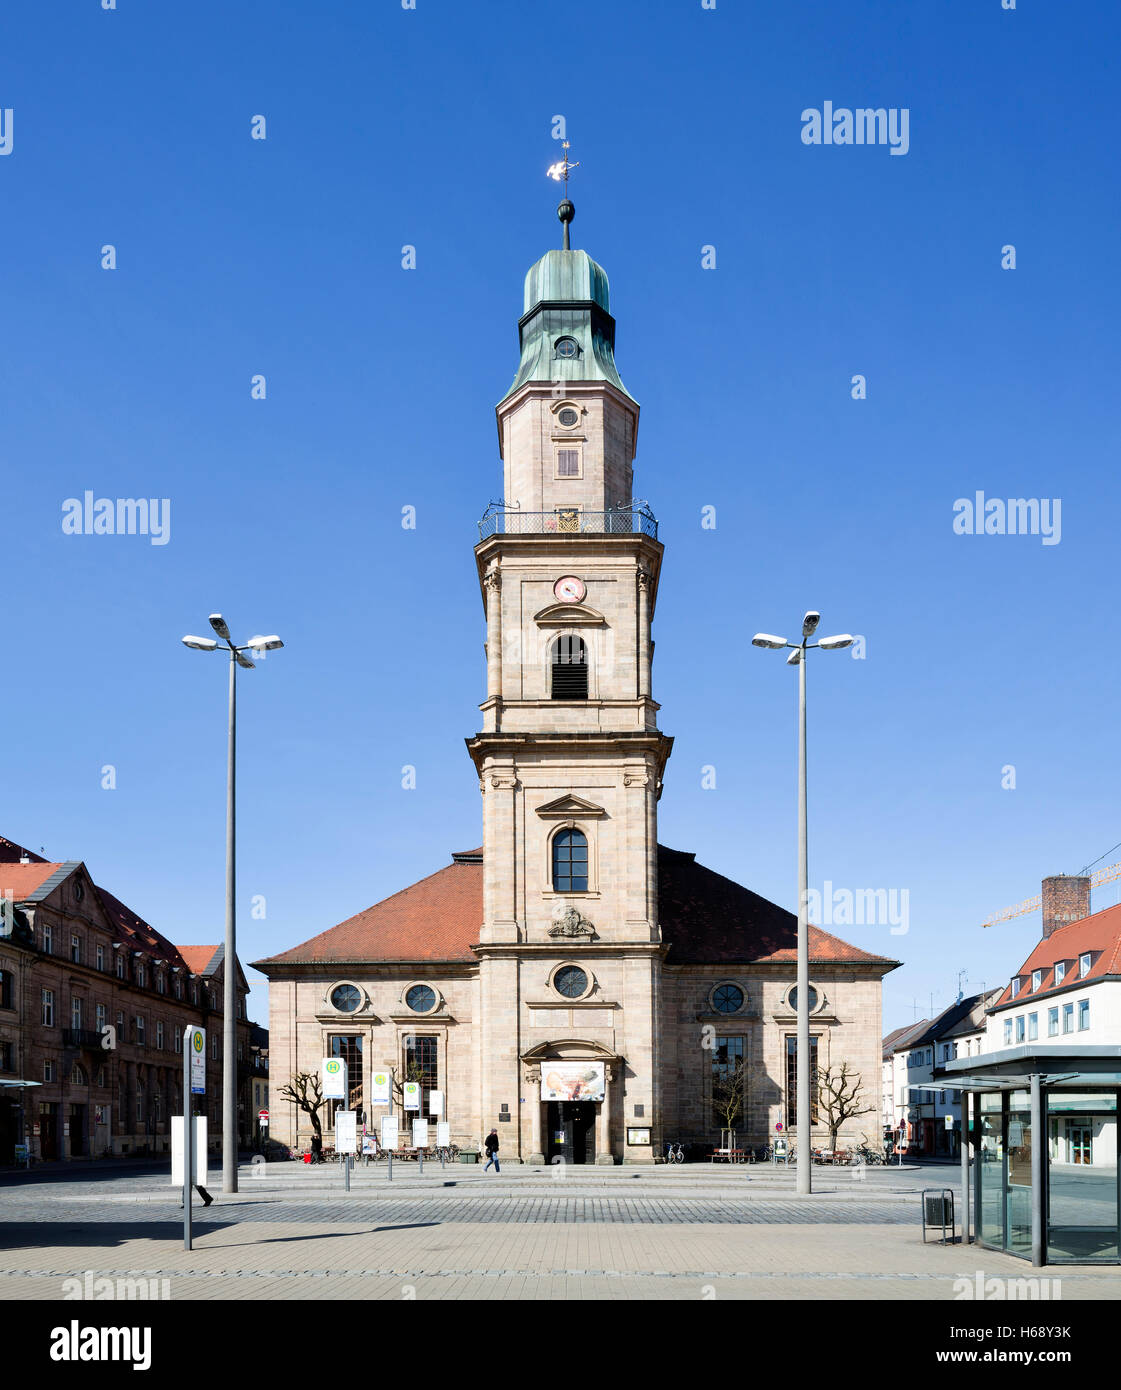 Hugenottenkirche, Huguenot Church, Erlangen, Middle Franconia, Bavaria, Germany - Stock Image